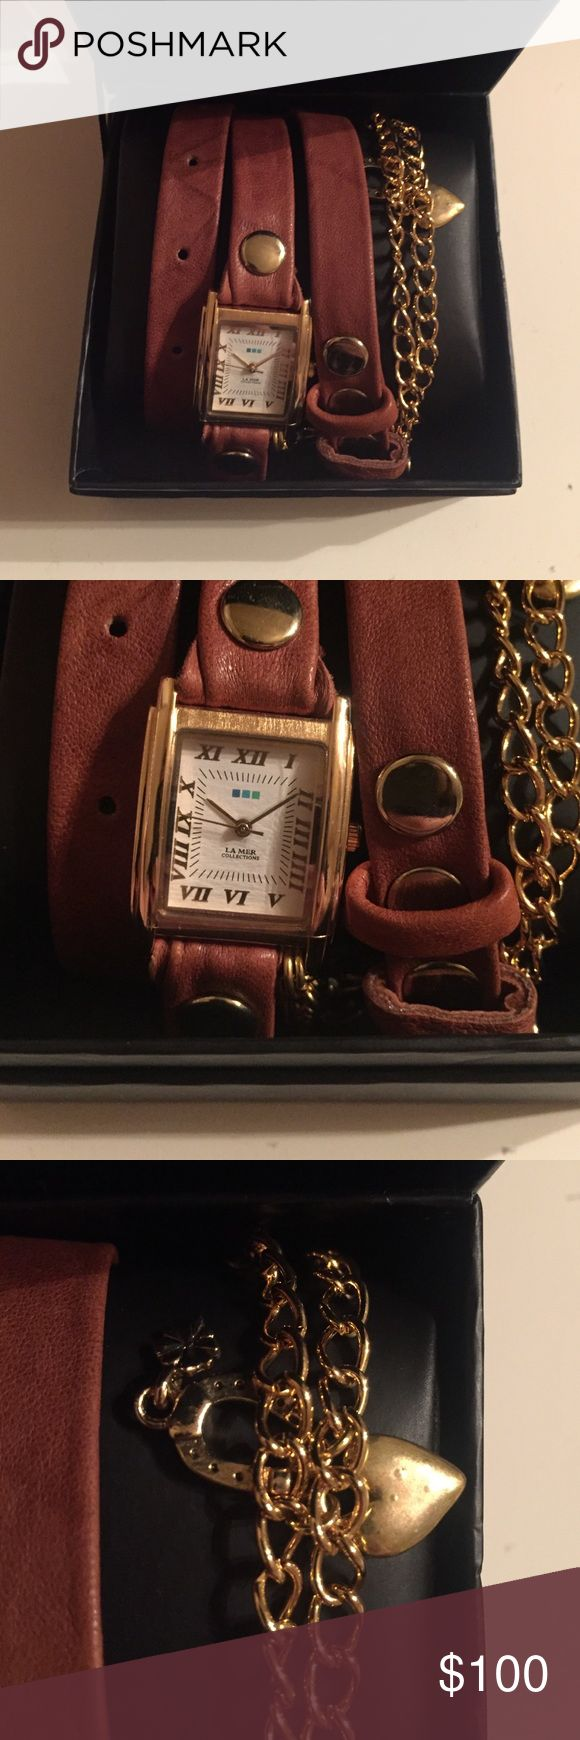 La Mer wrap watch Brown and gold leather wrap watch with charms. Negotiable within reason :) Needs a new battery La Mer Collections Jewelry Bracelets